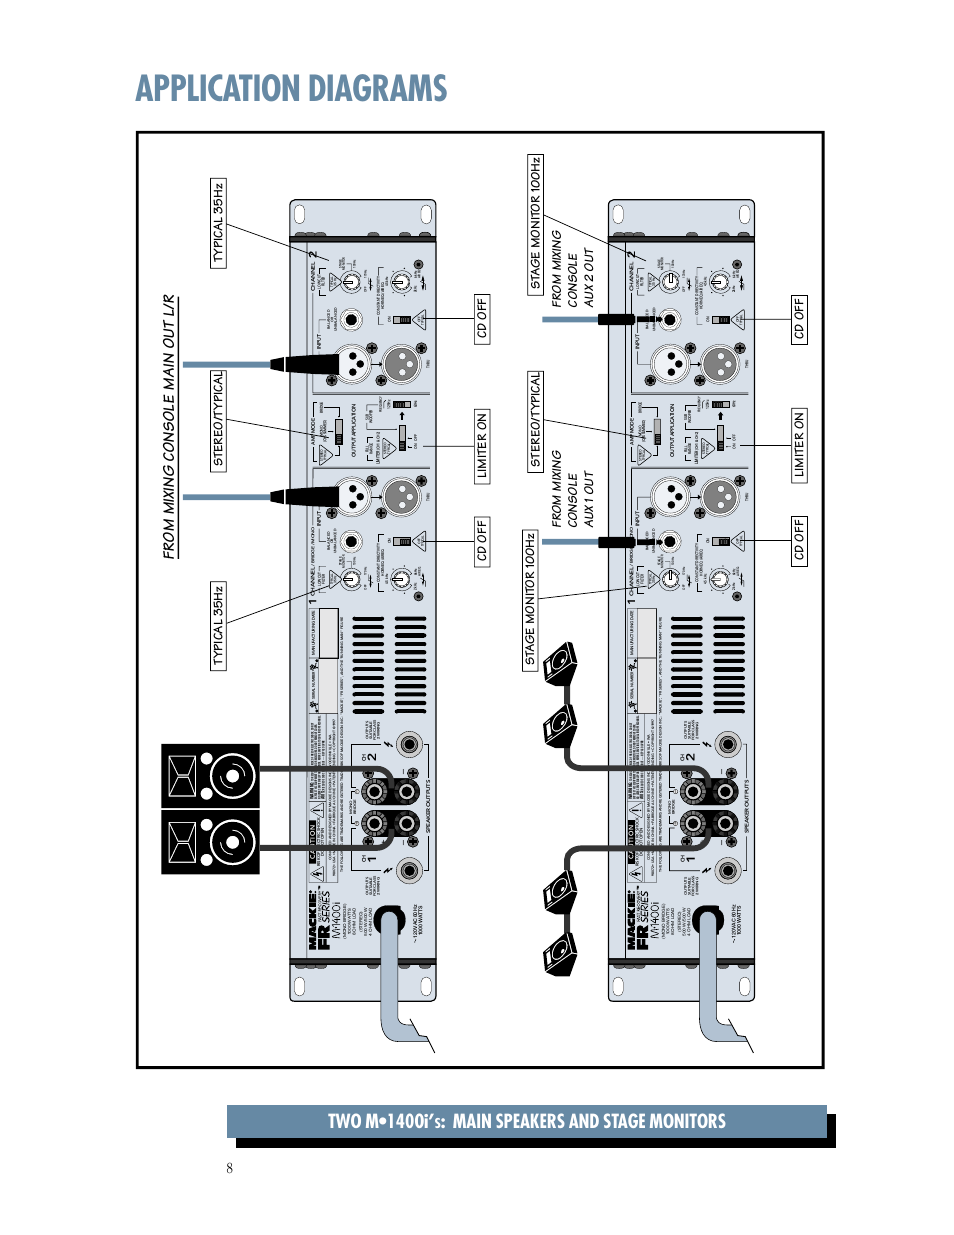 Application diagrams, two m•1400i, main speakers and stage.